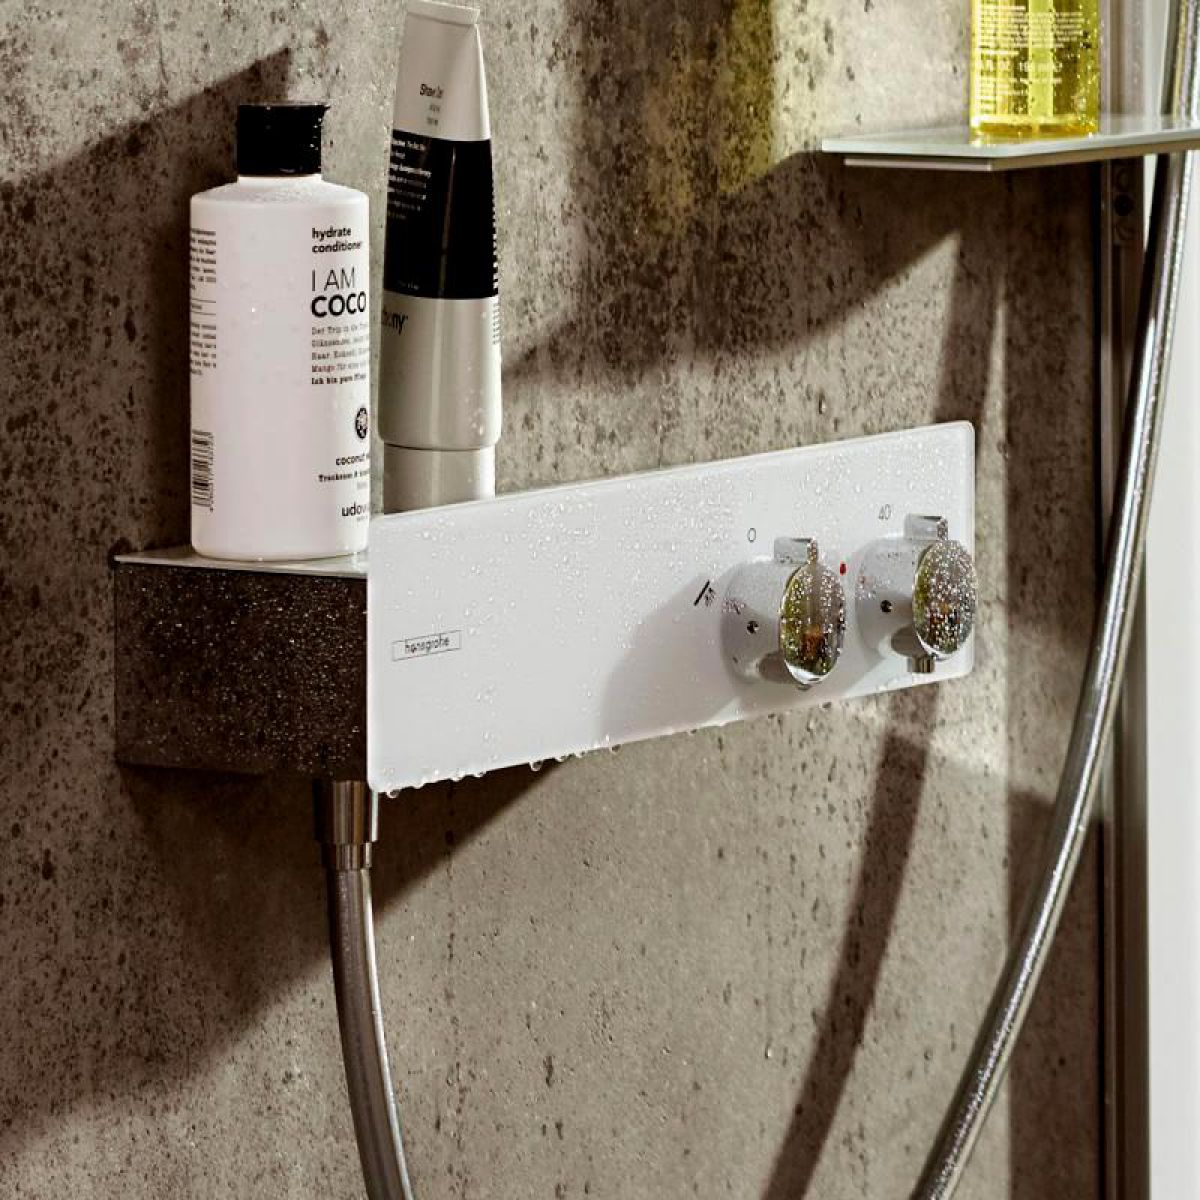 Hansgrohe Showertablet 350 Exposed Thermostatic Shower